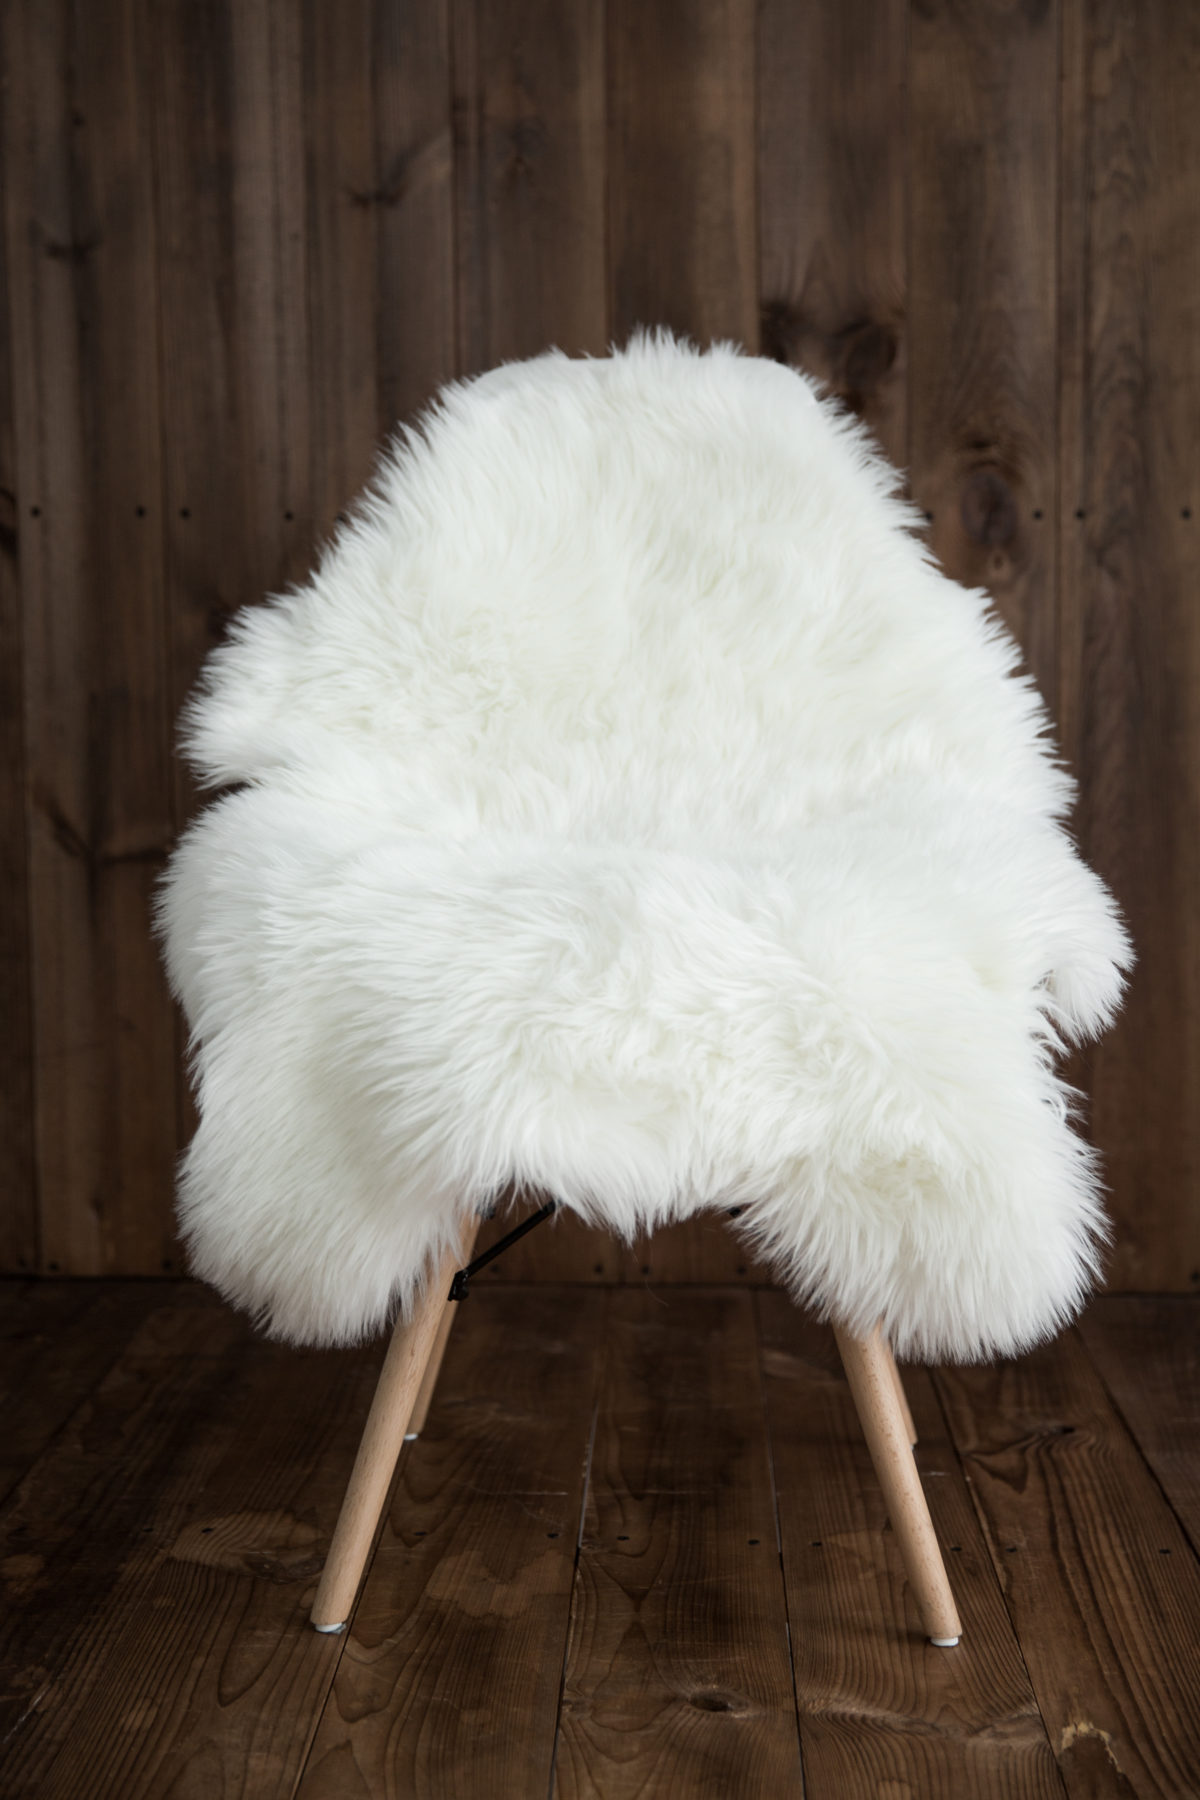 Picture of: Sheepskin Faux Fur Chair Cover Rug Seat Pad Area Rugs For Bedroom Sofa Floor Vanity Nursery Decor White Home Decor Area Rugs Sheepskin Faux Fur Rug My Comfy Zone